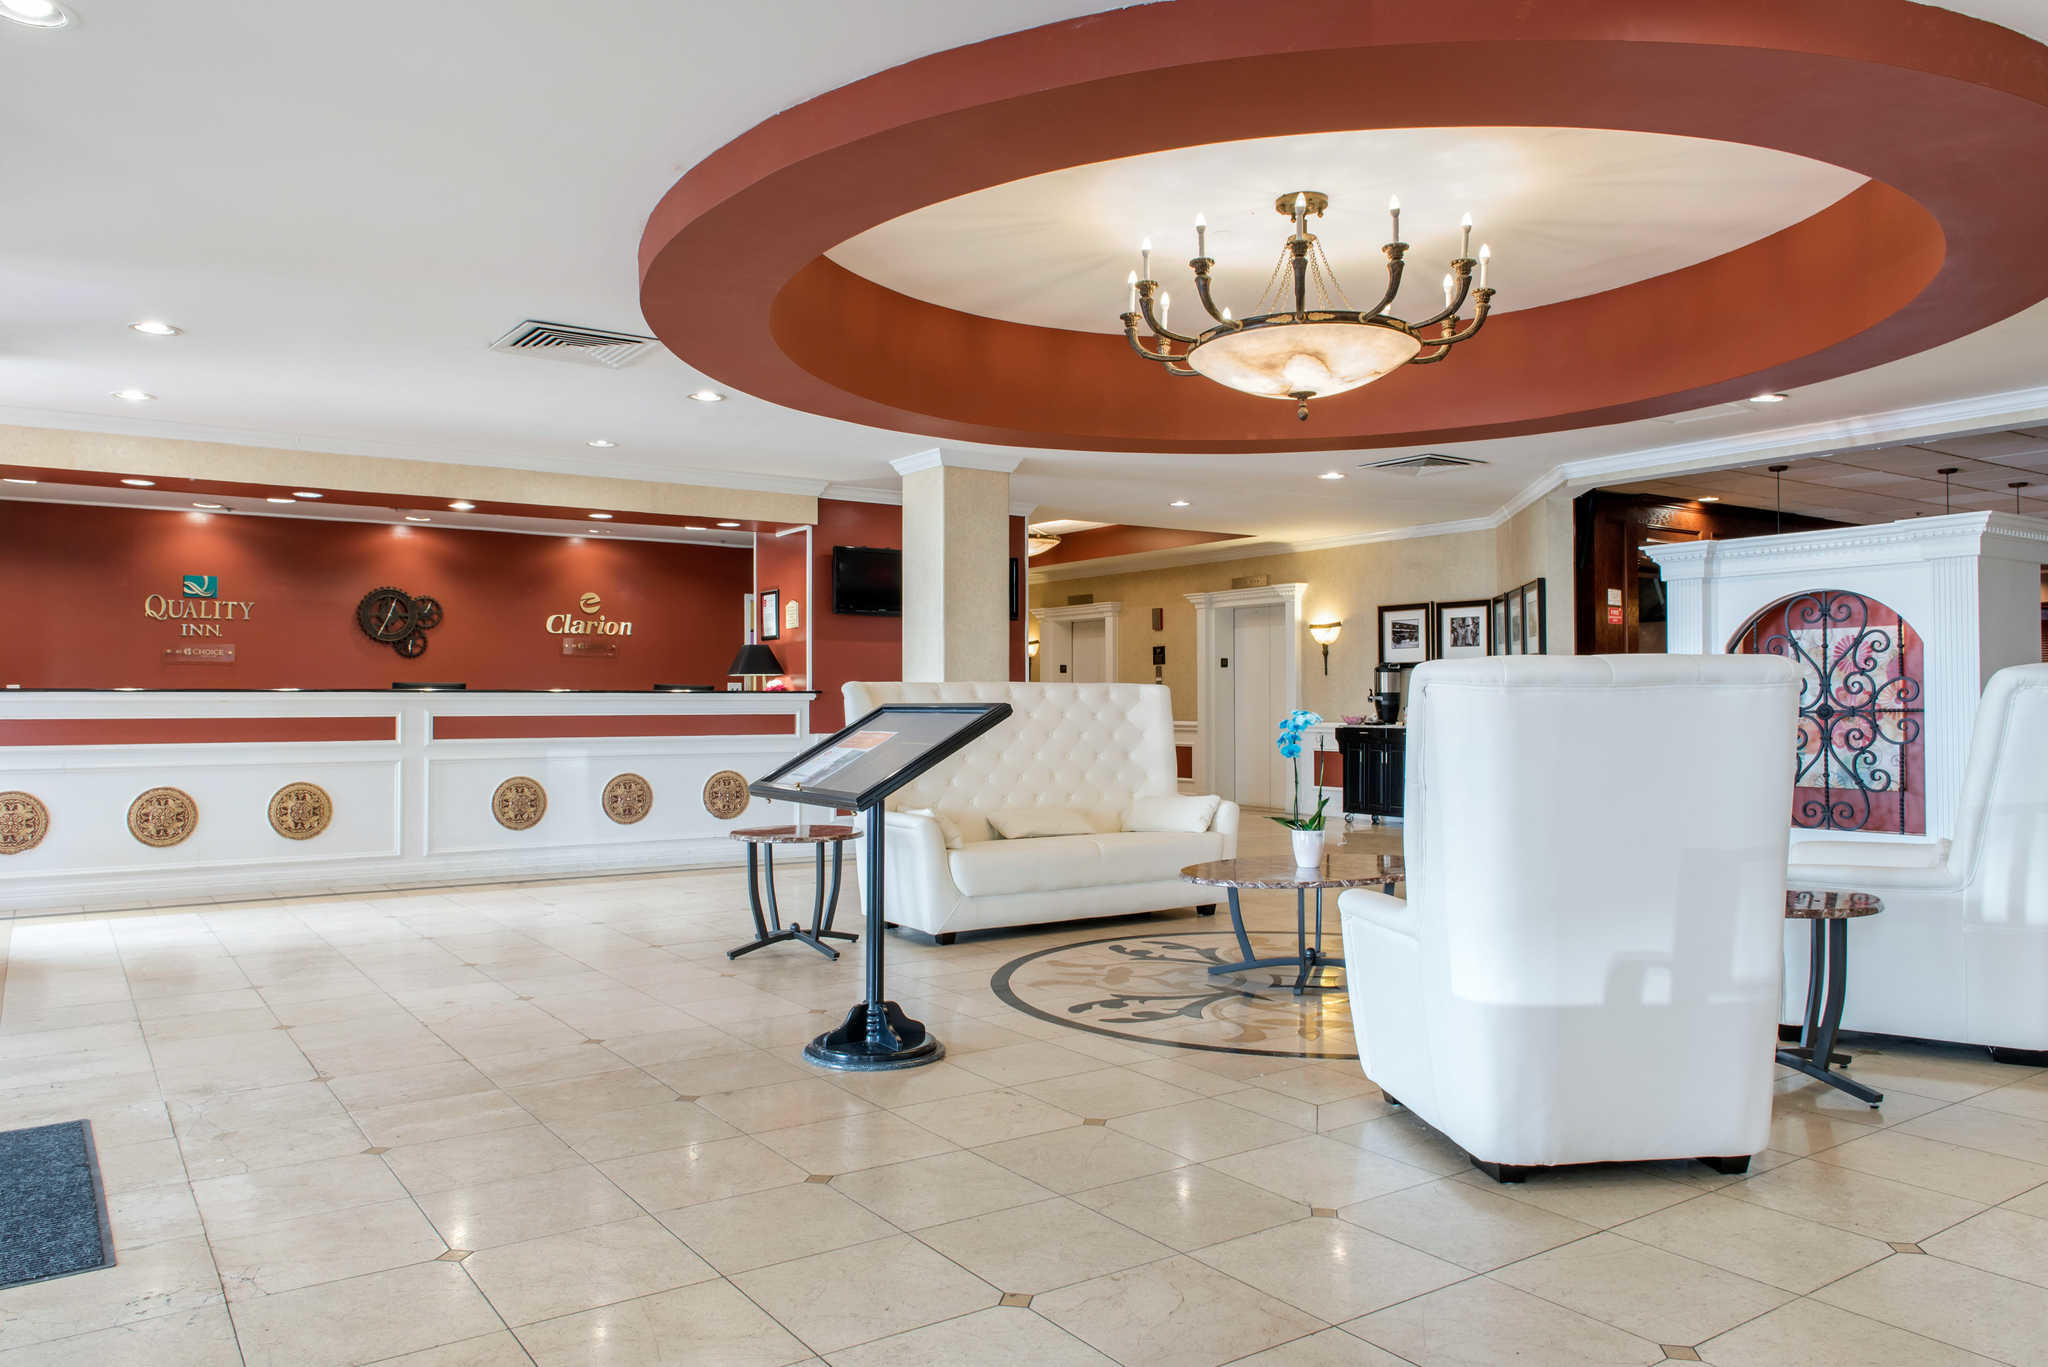 Quality Inn Airport image 6